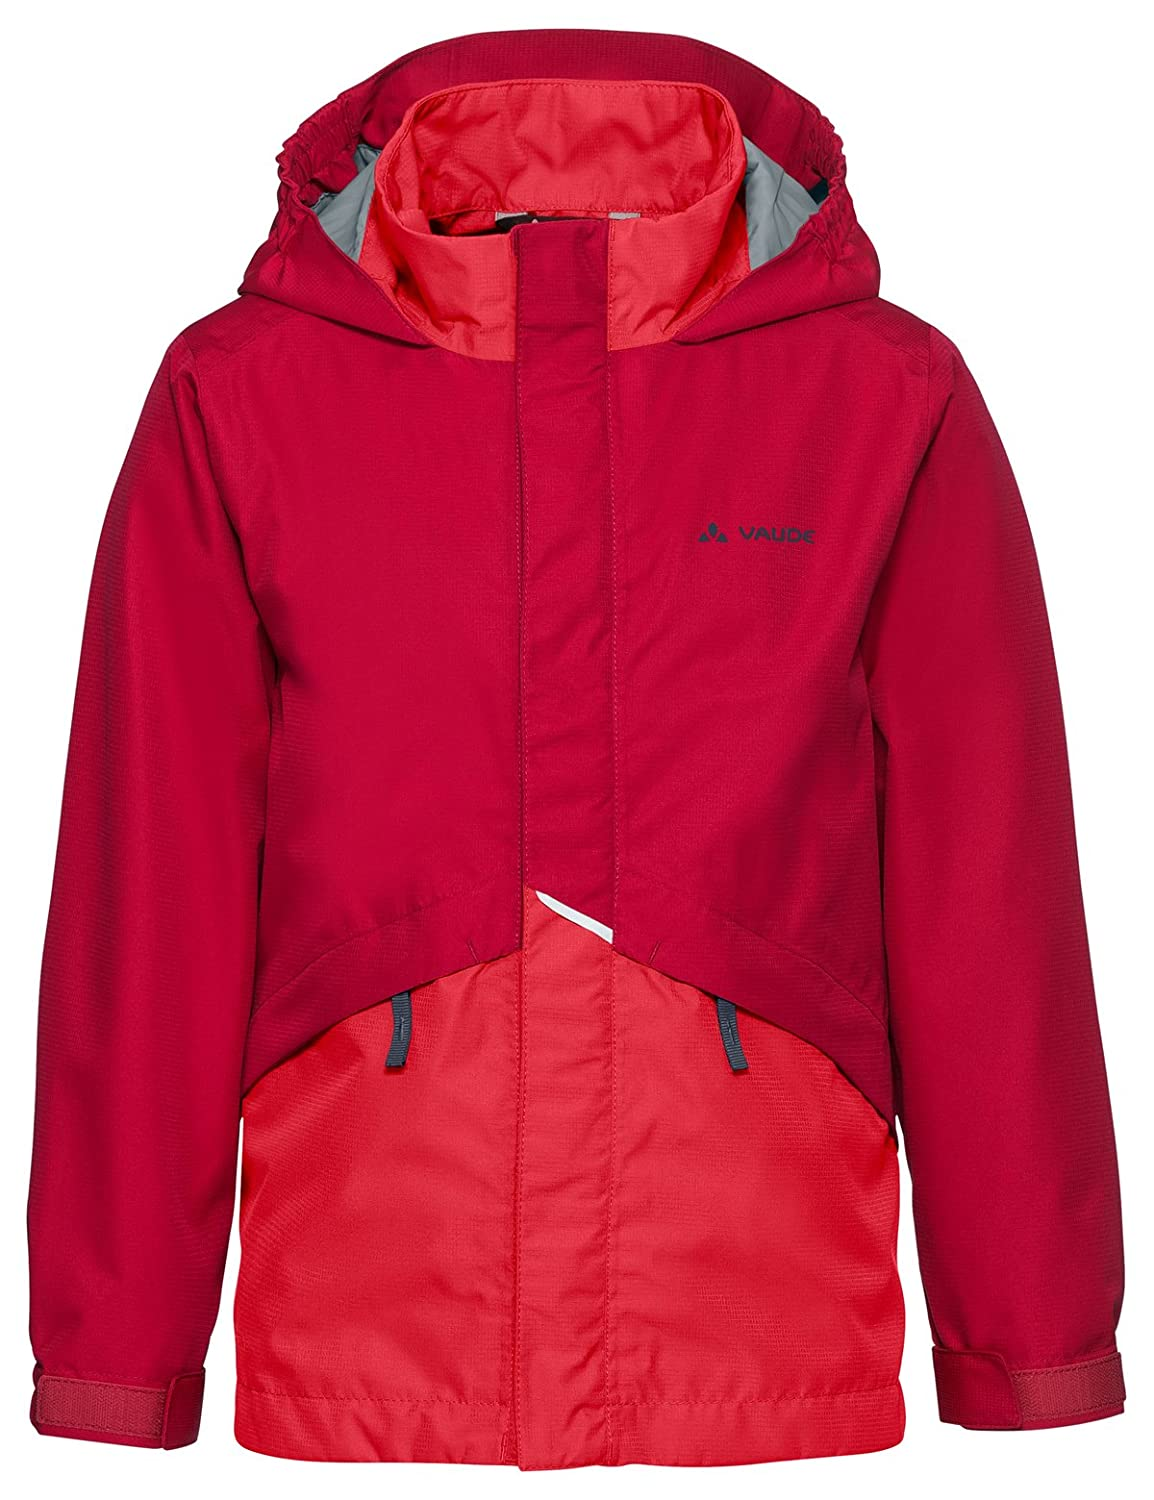 Vaude Jungen Kids Escape Light Jacket Iii Jacke